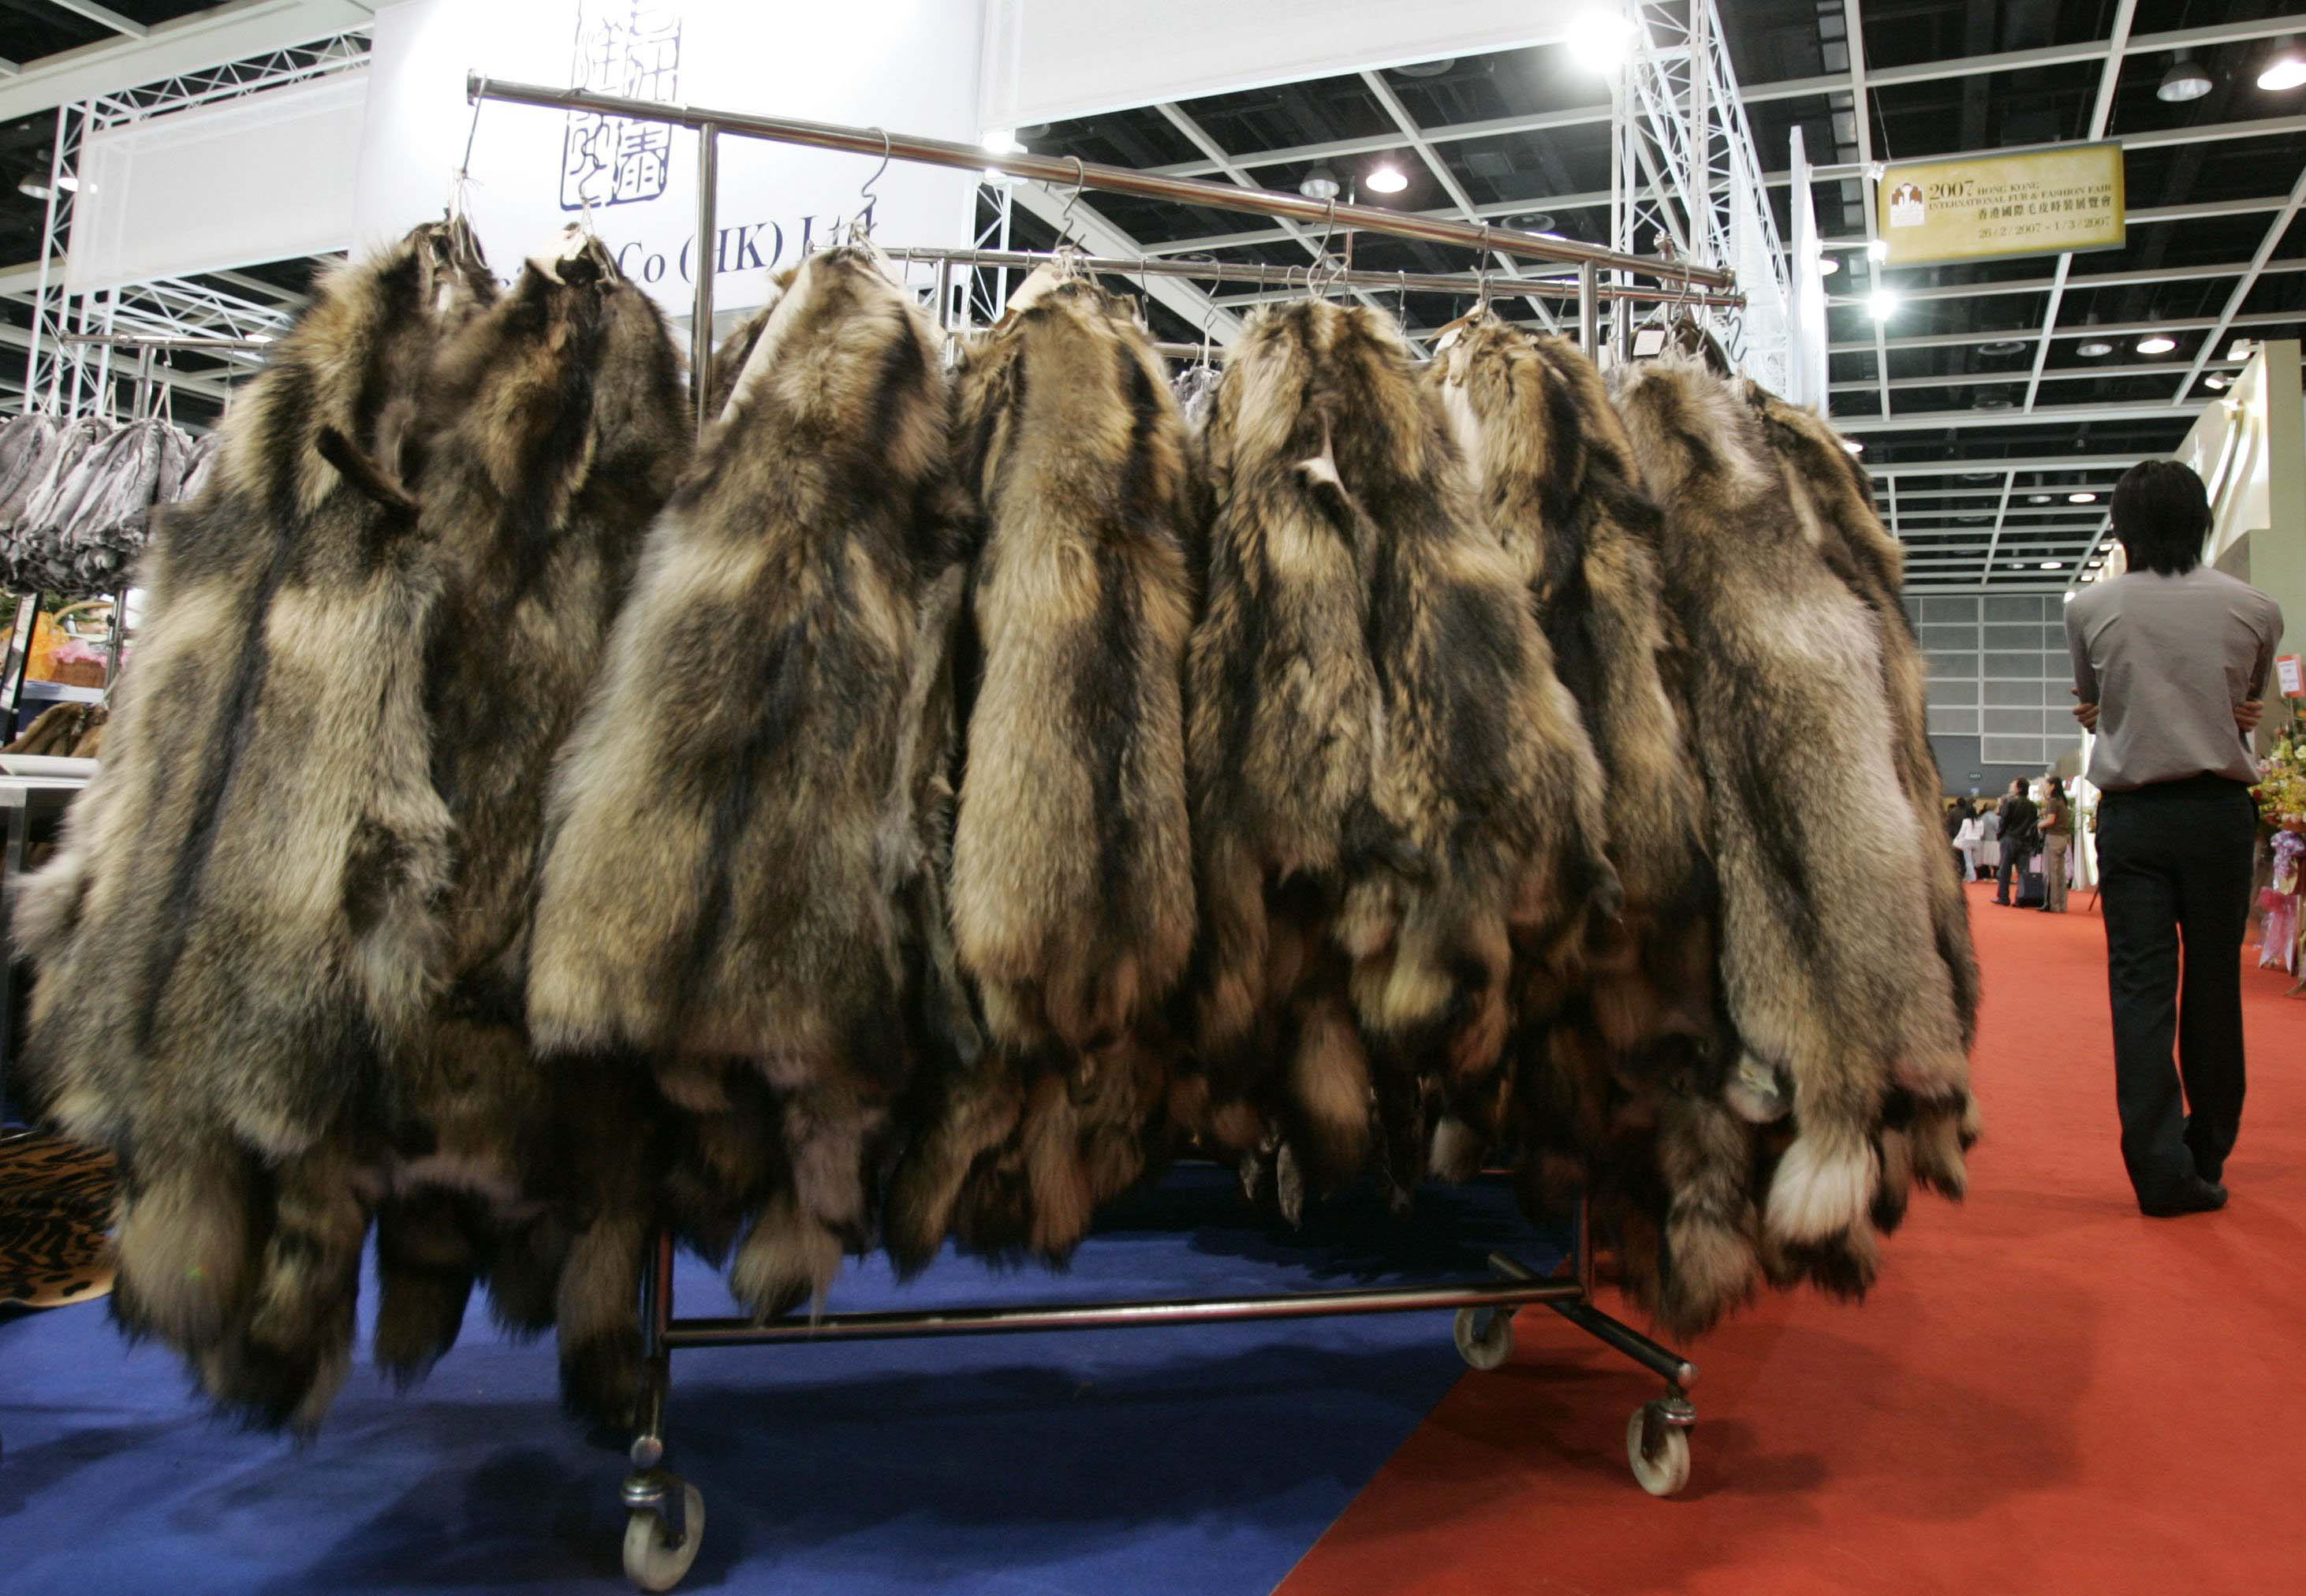 Fur is displayed at a booth during the Hong Kong International Fur and Fashion Fair in Hong Kong in this February 26, 2007 file photo. While fur industry insiders gush about growing sales and new frontiers, public relations remains the crucial battleground, bar none, for a $13.5 billion fur industry dogged by accusations of being inhumane and unnecessary. To match feature FUR/ REUTERS/Paul Yeung (CHINA)